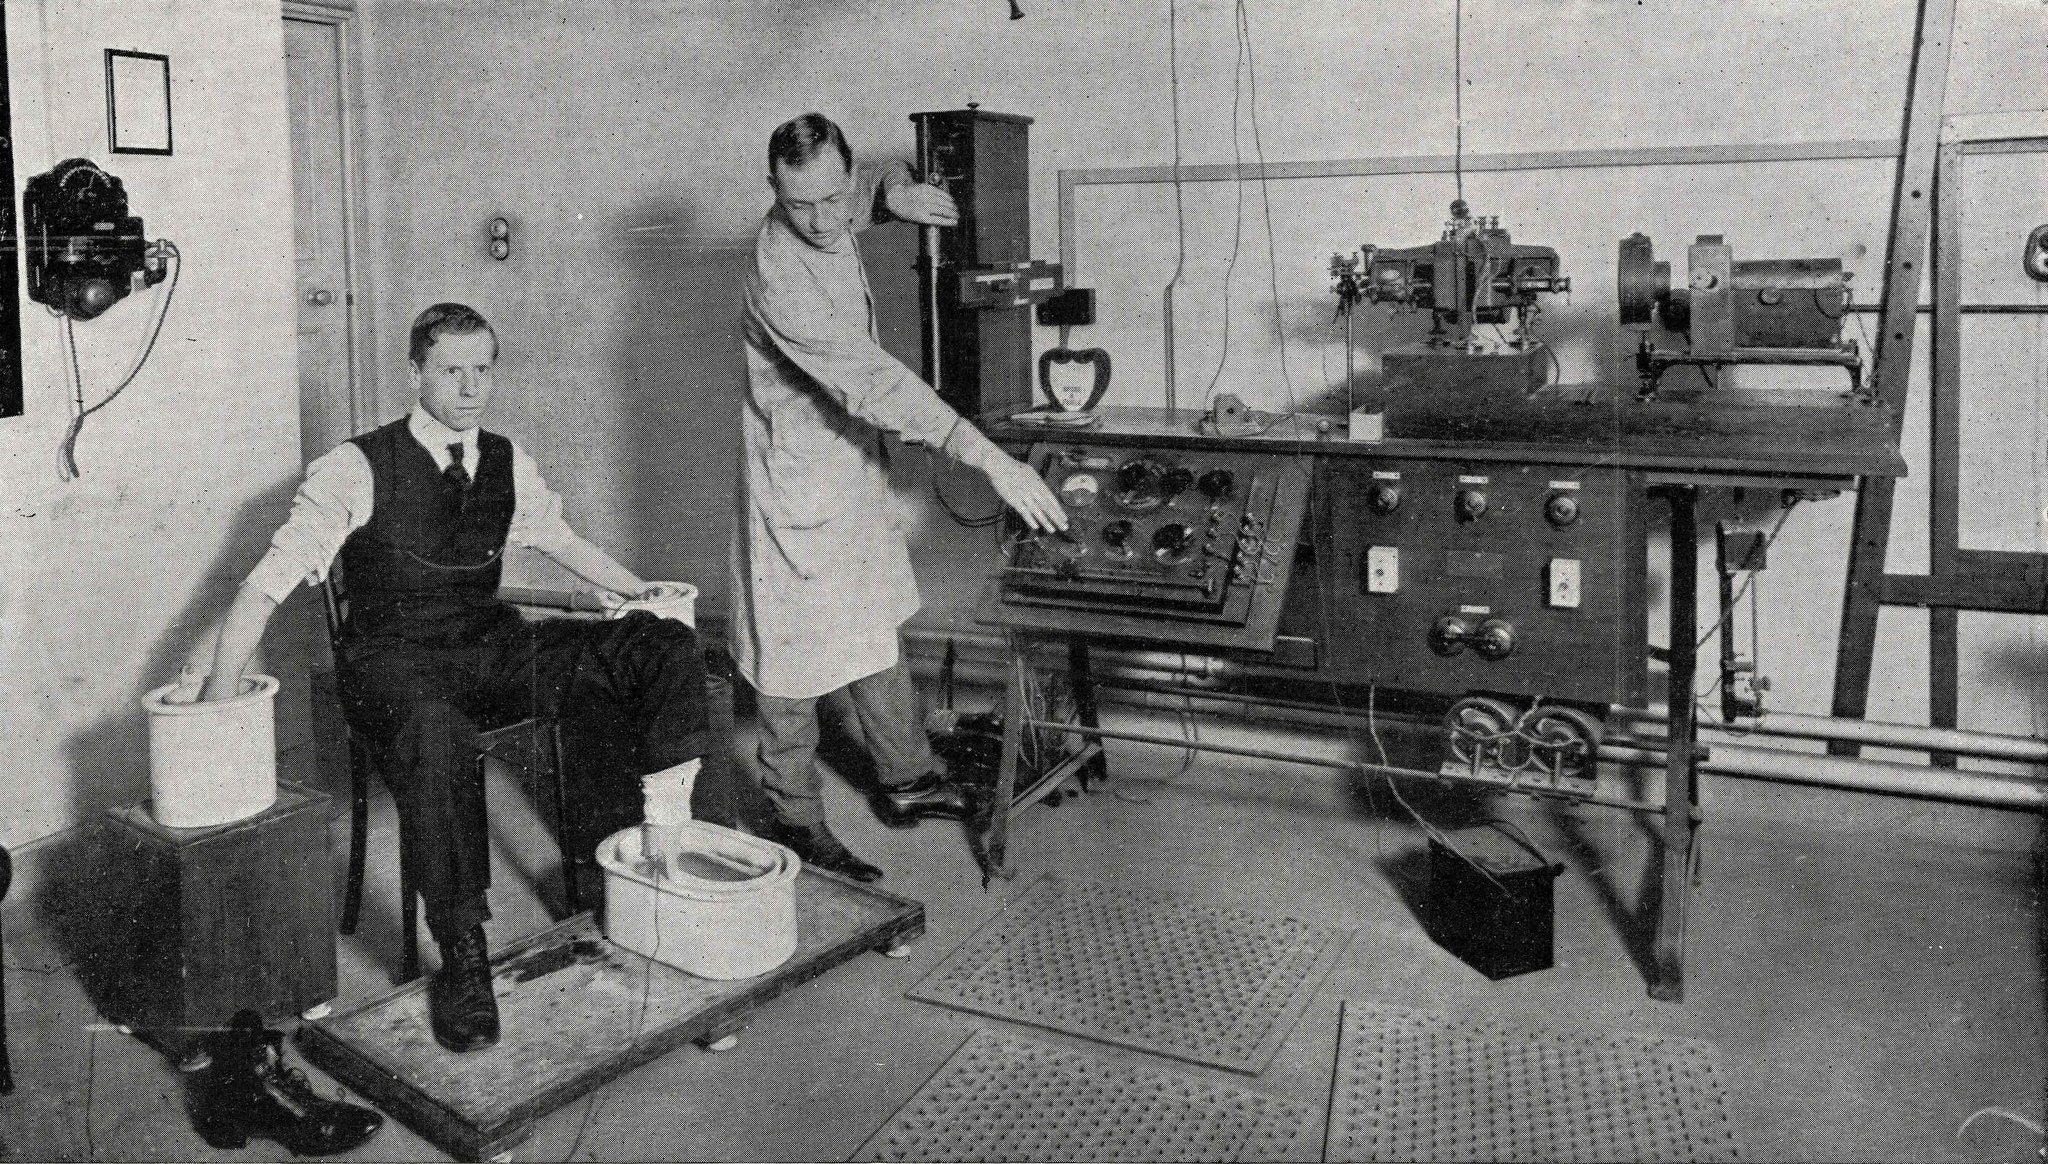 ECG performed at National Heart Hospital, London 1916.